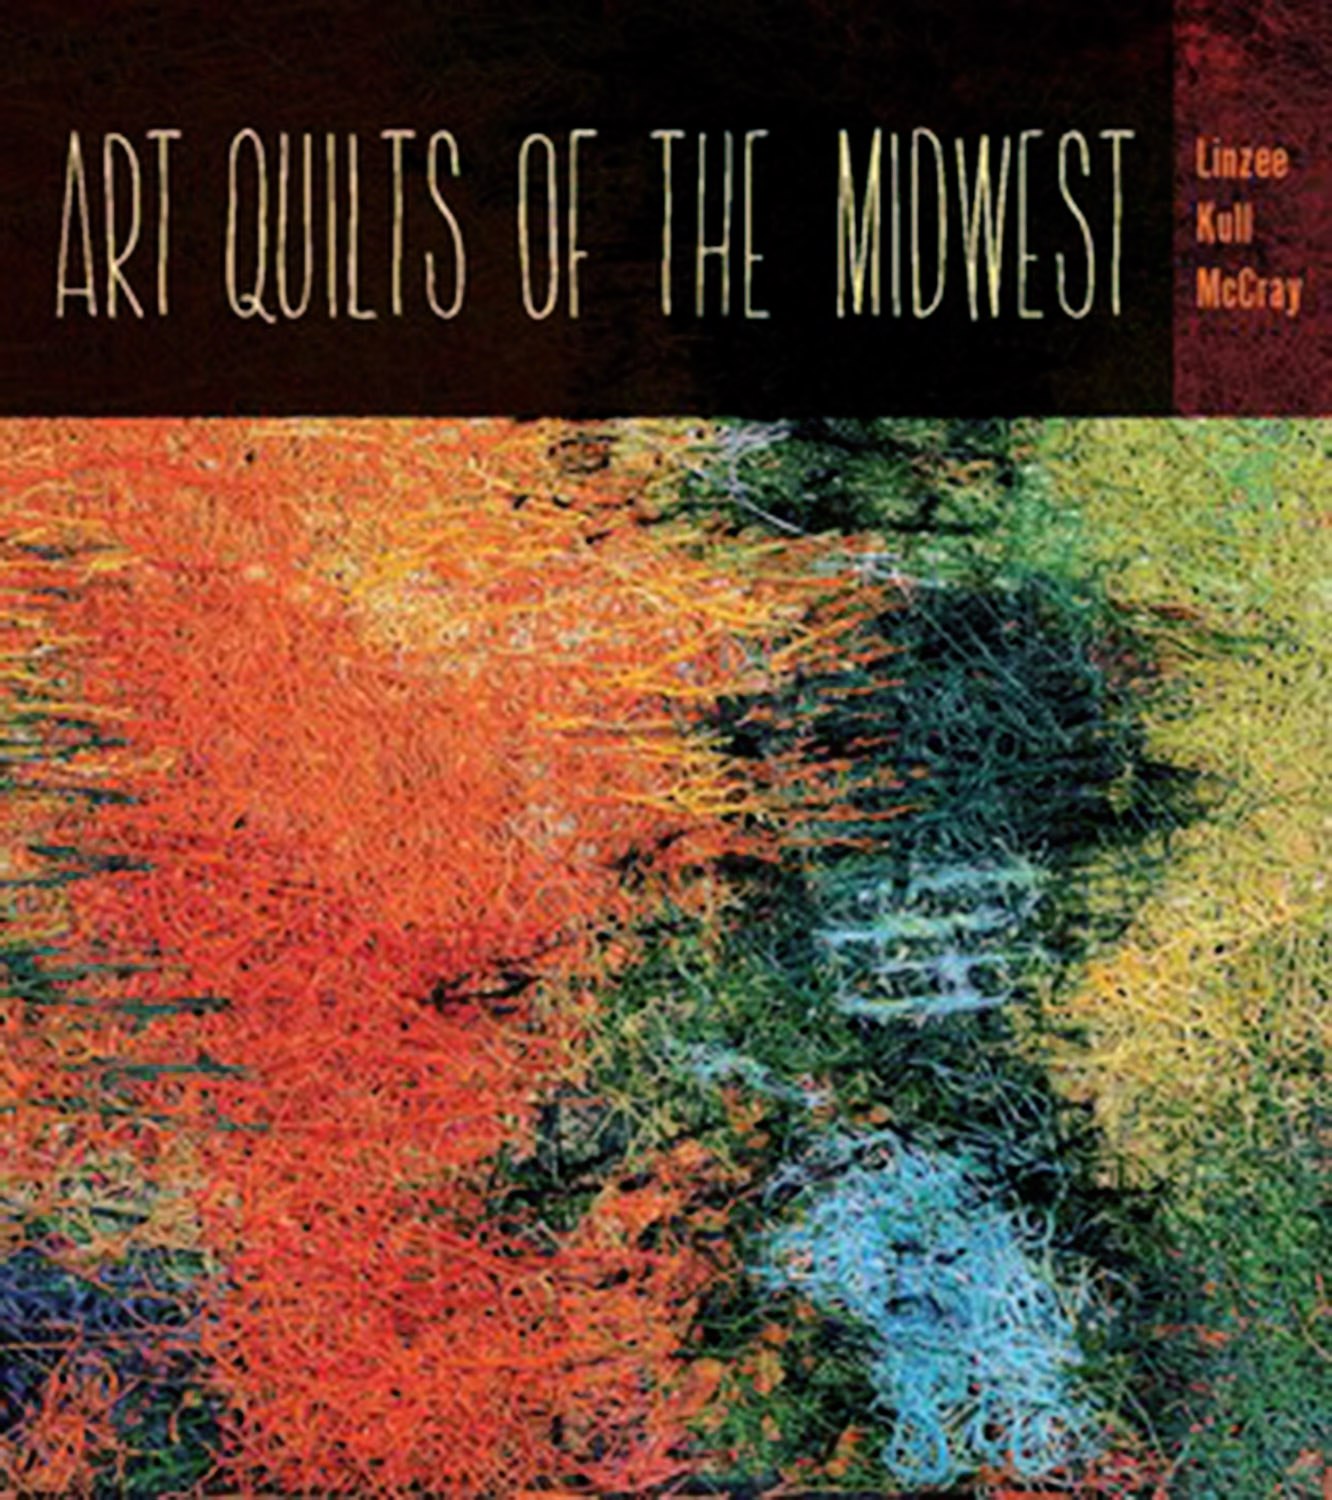 web_Art Quilts of the Midwest cover.jpg